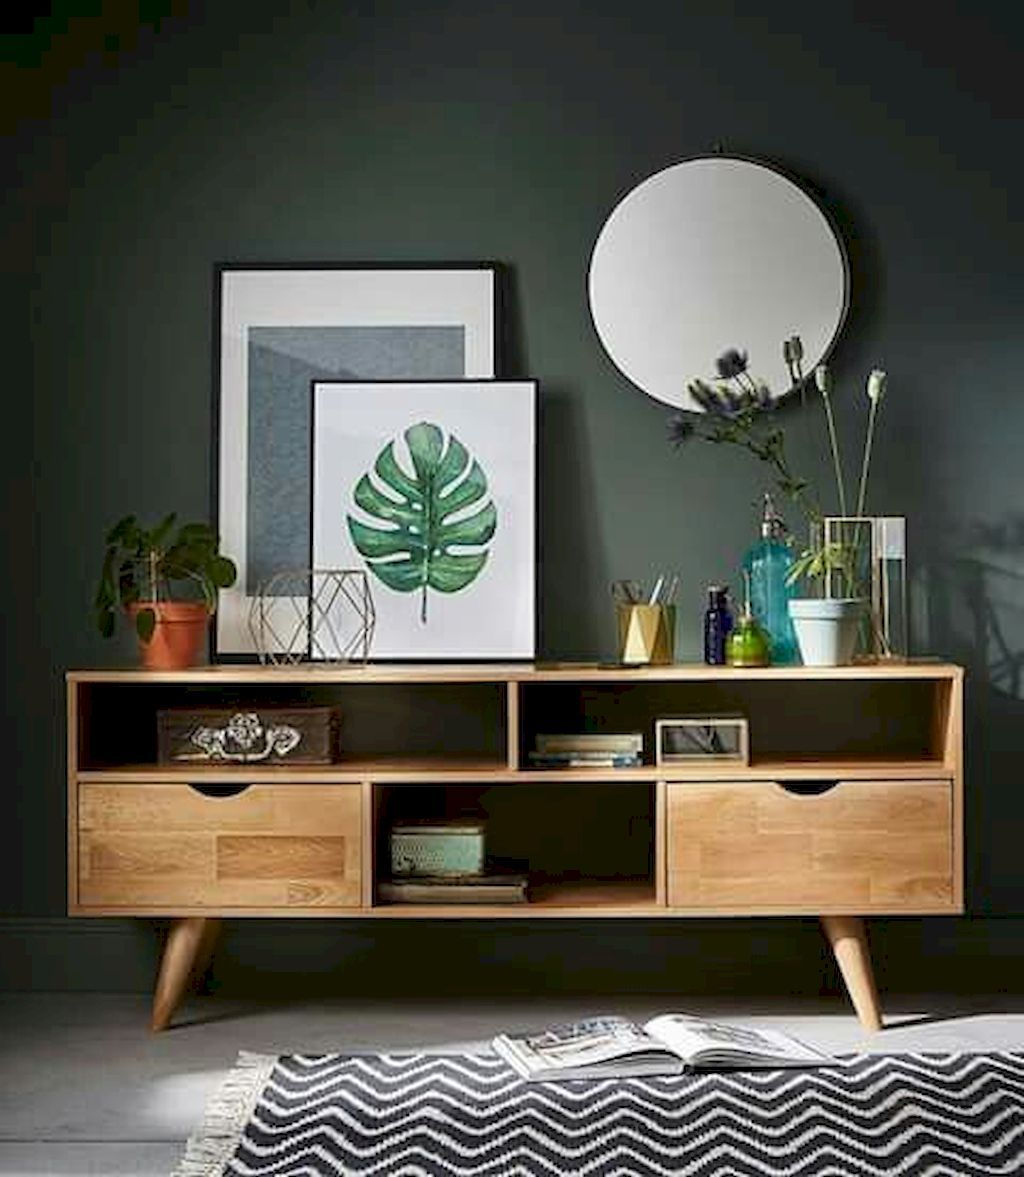 Living Room Modern Ideas Awesome Living Room Modern Small: 80 Awesome Mid Century Modern Design Ideas (27